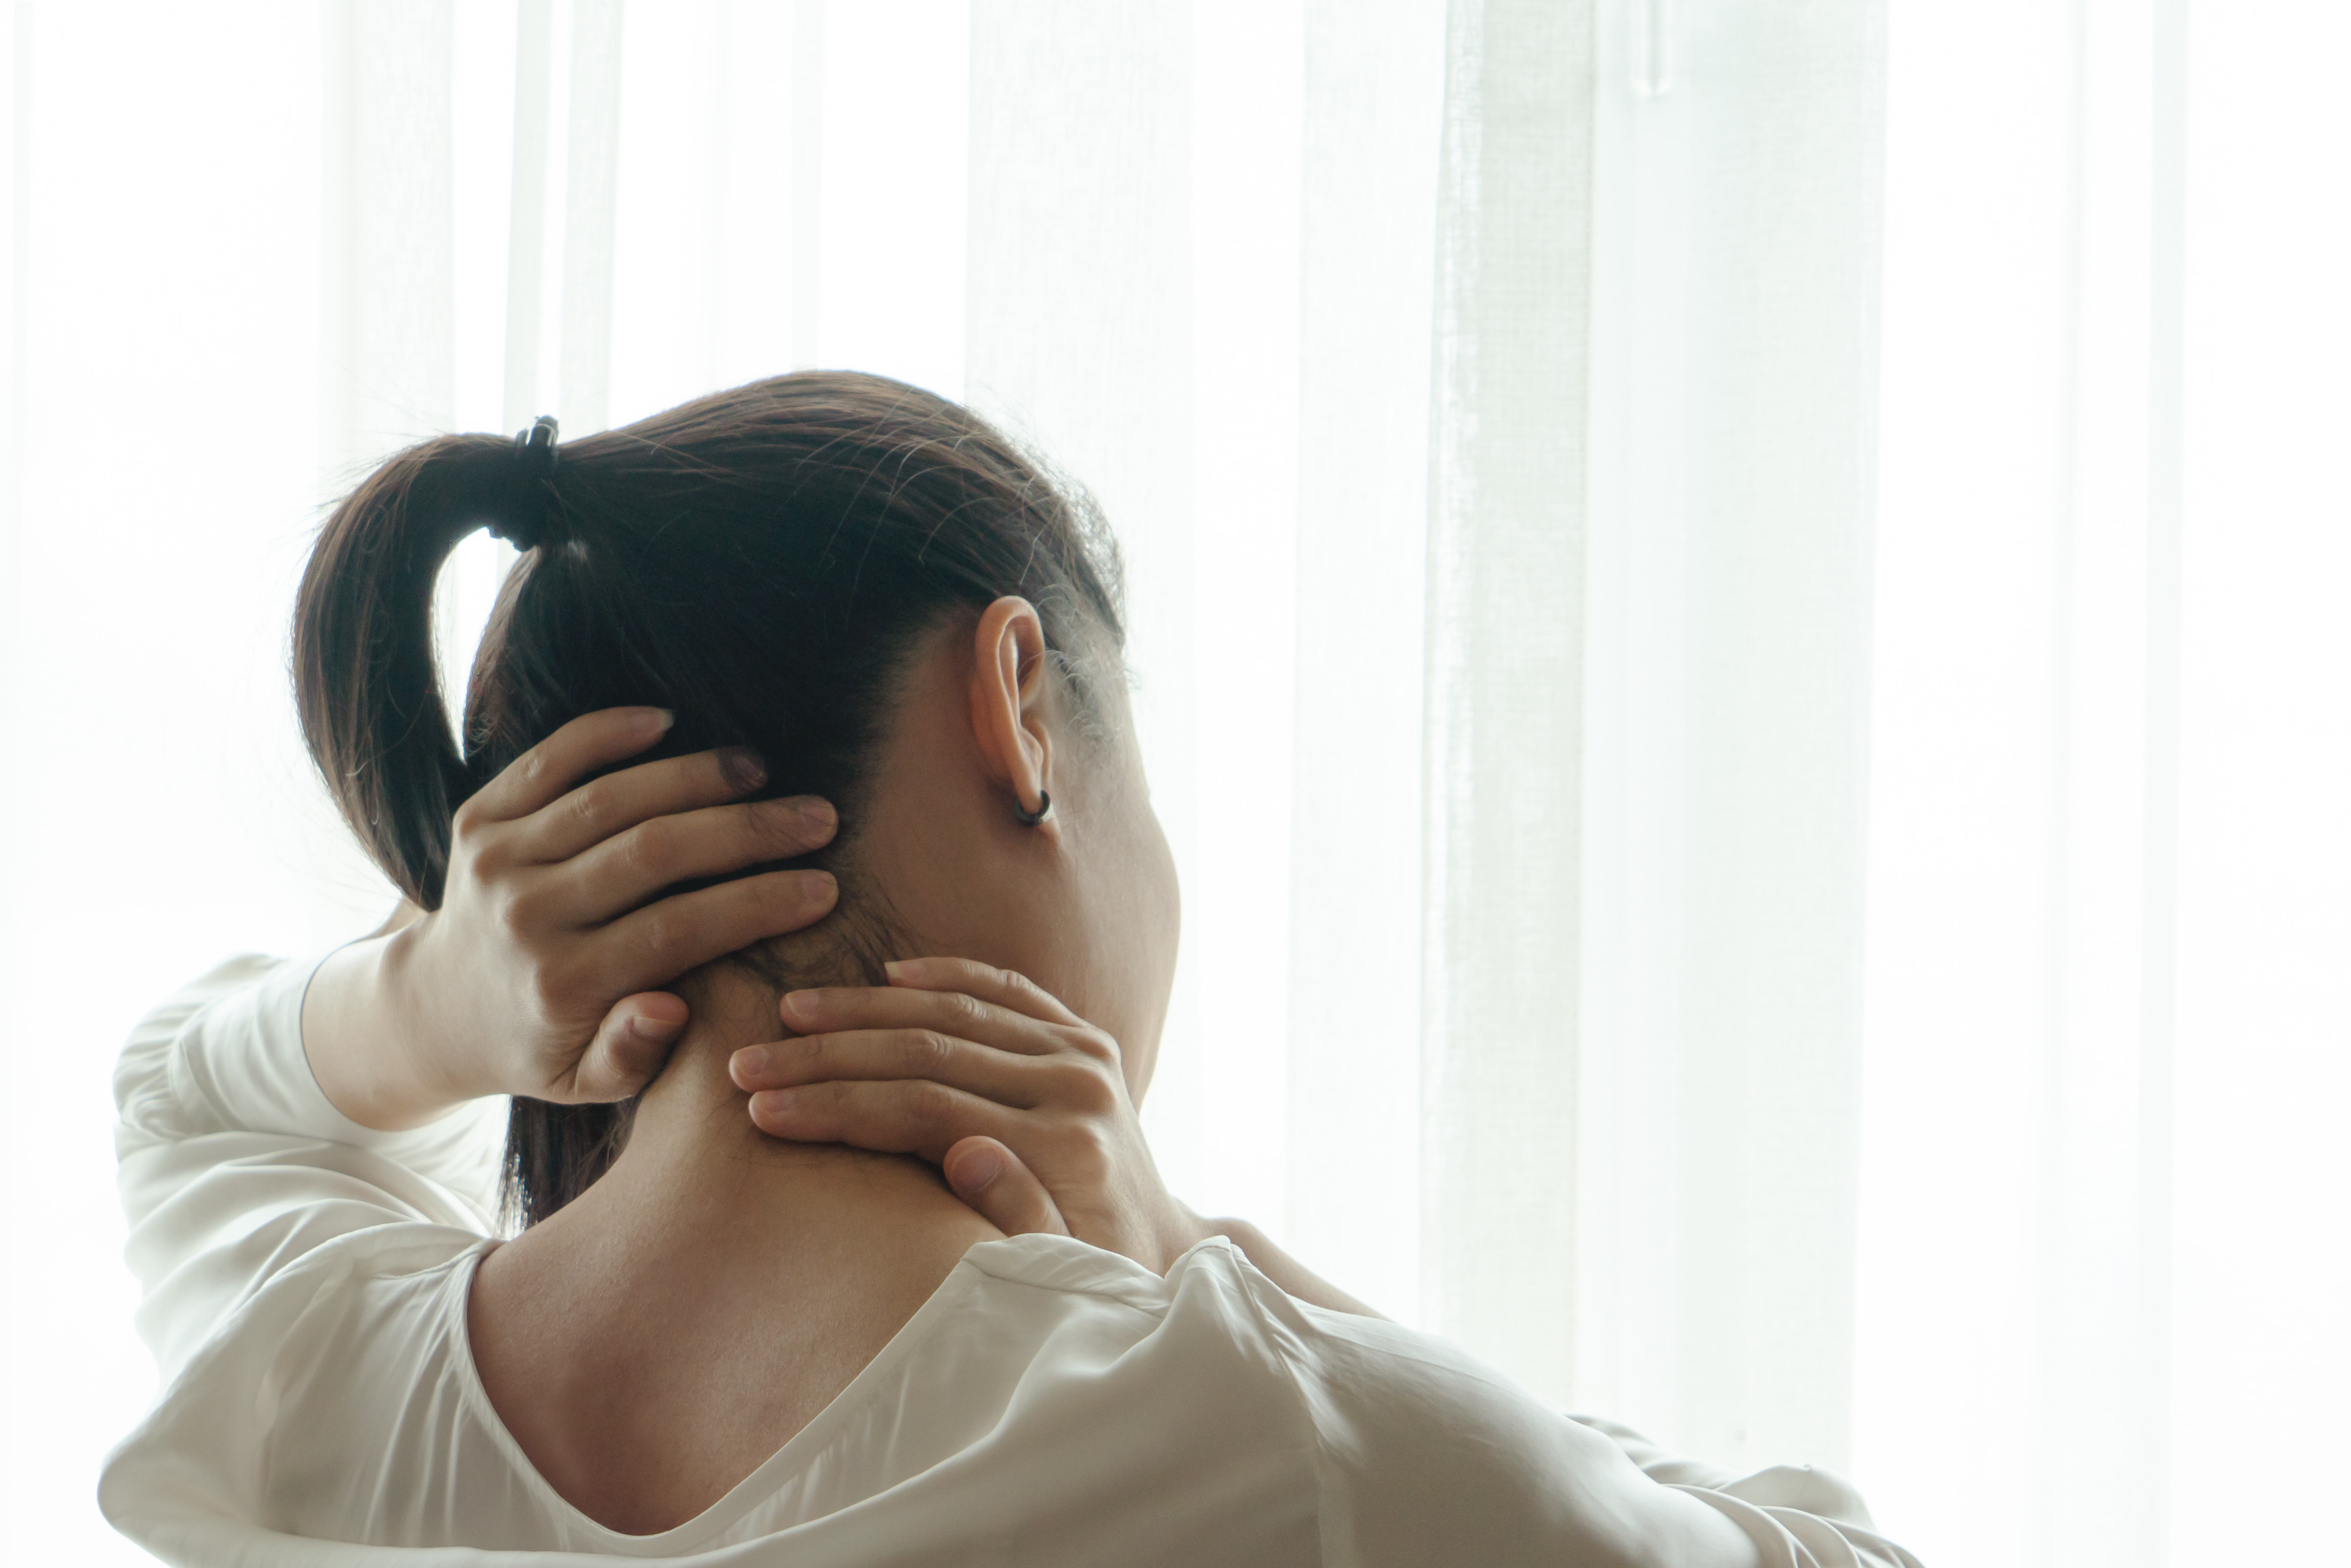 Woman with ponytail grabs the back of her neck and massages it